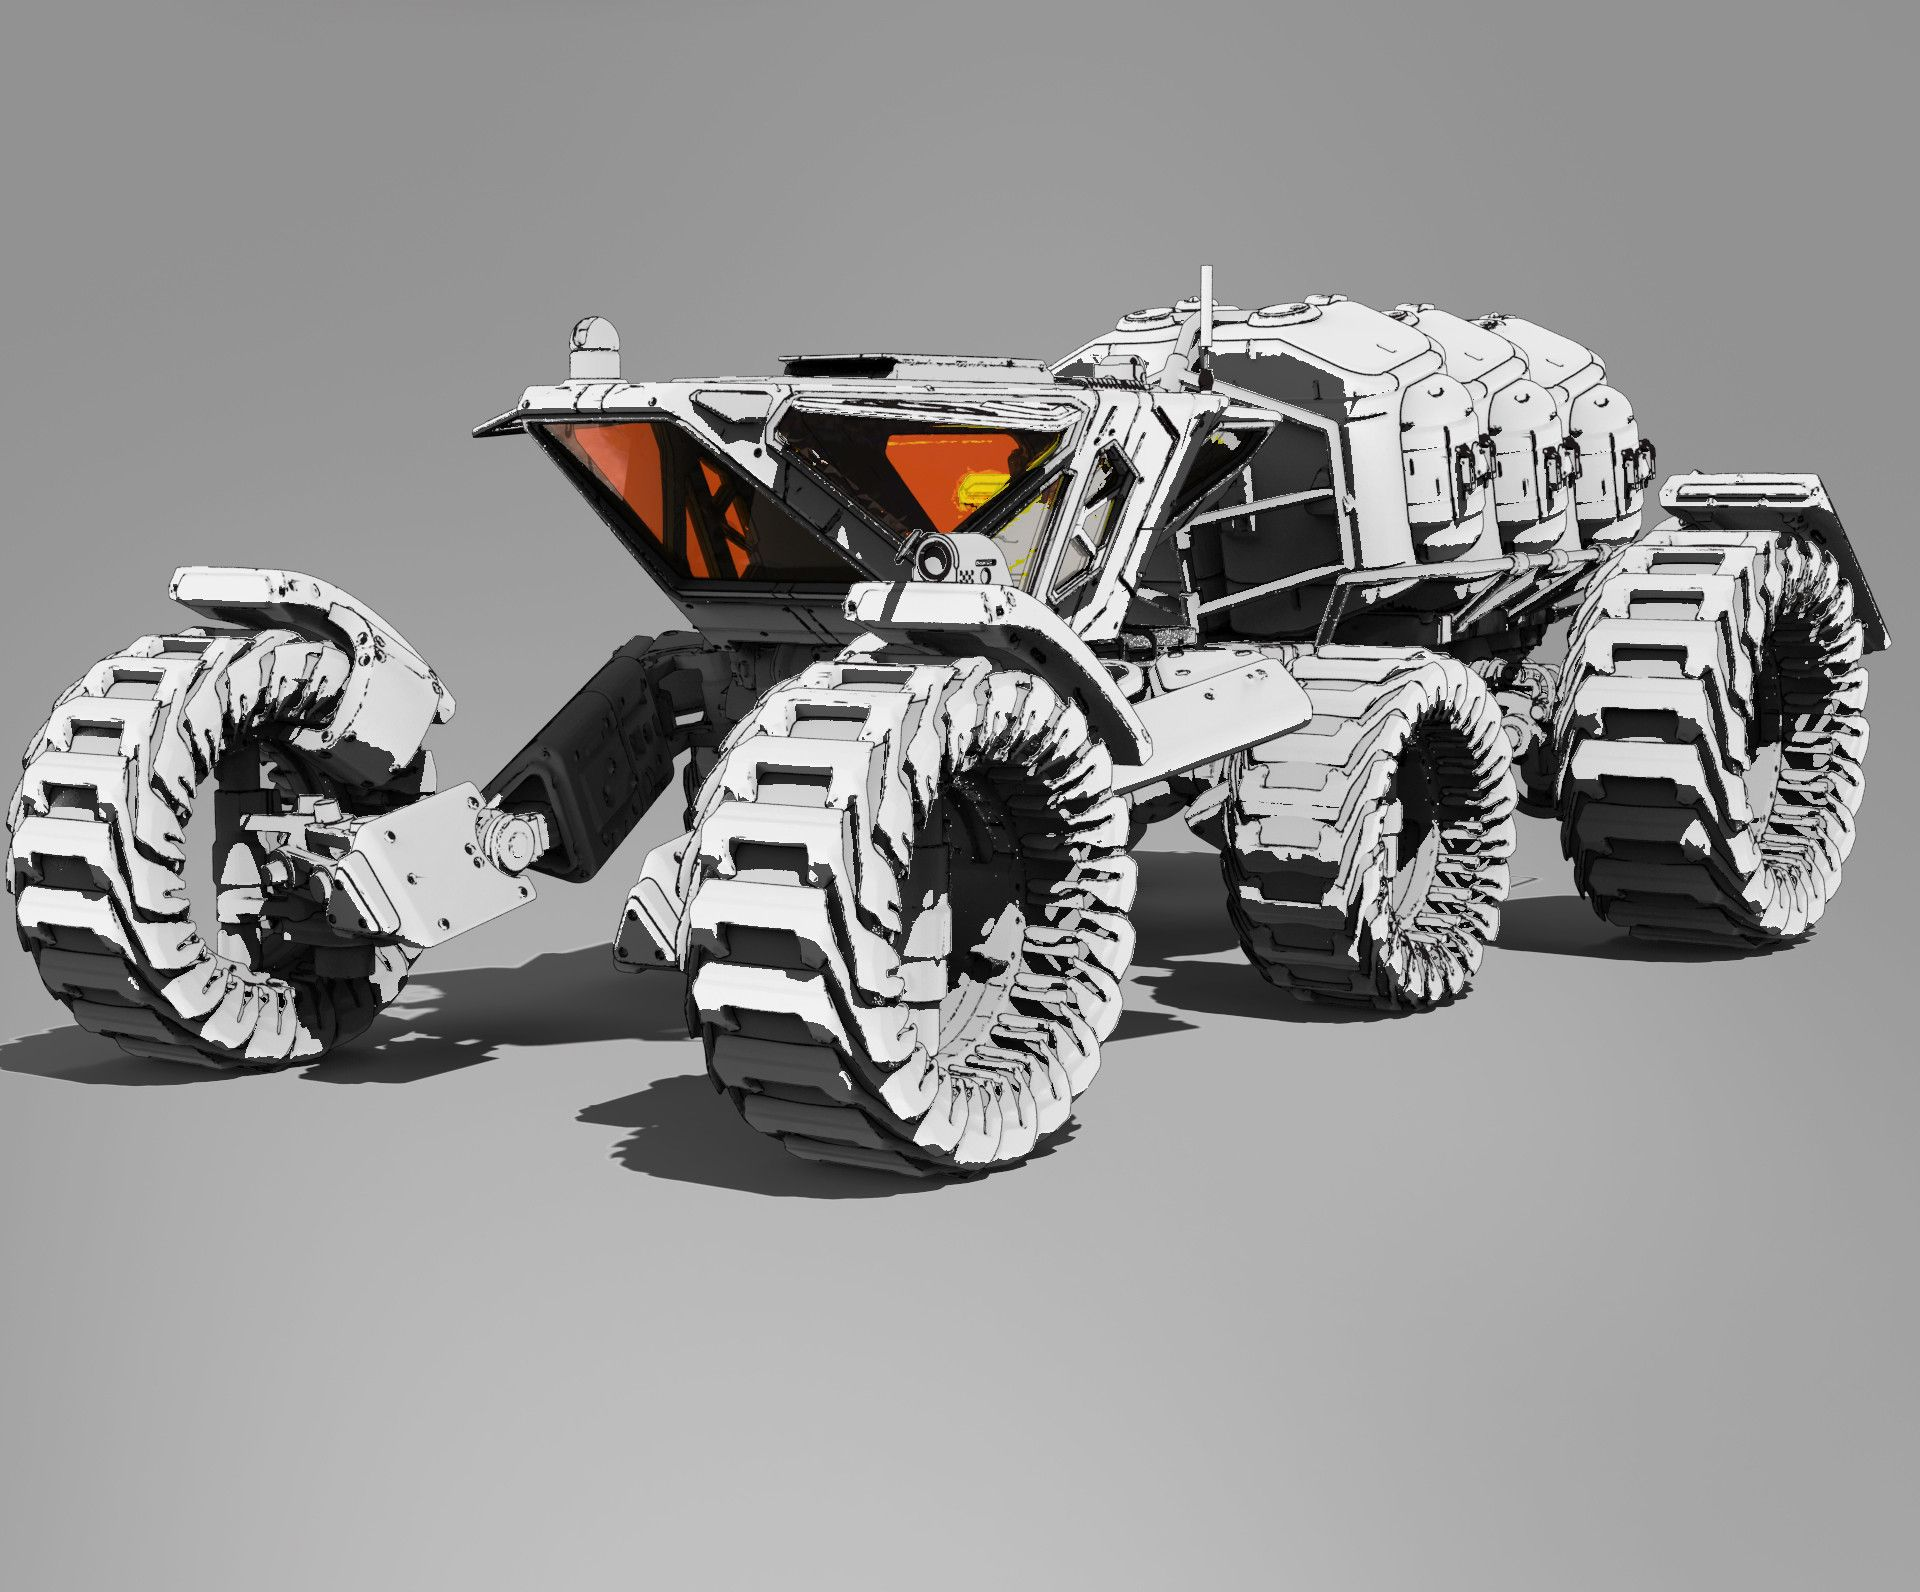 mars rover back online 2019 - photo #28